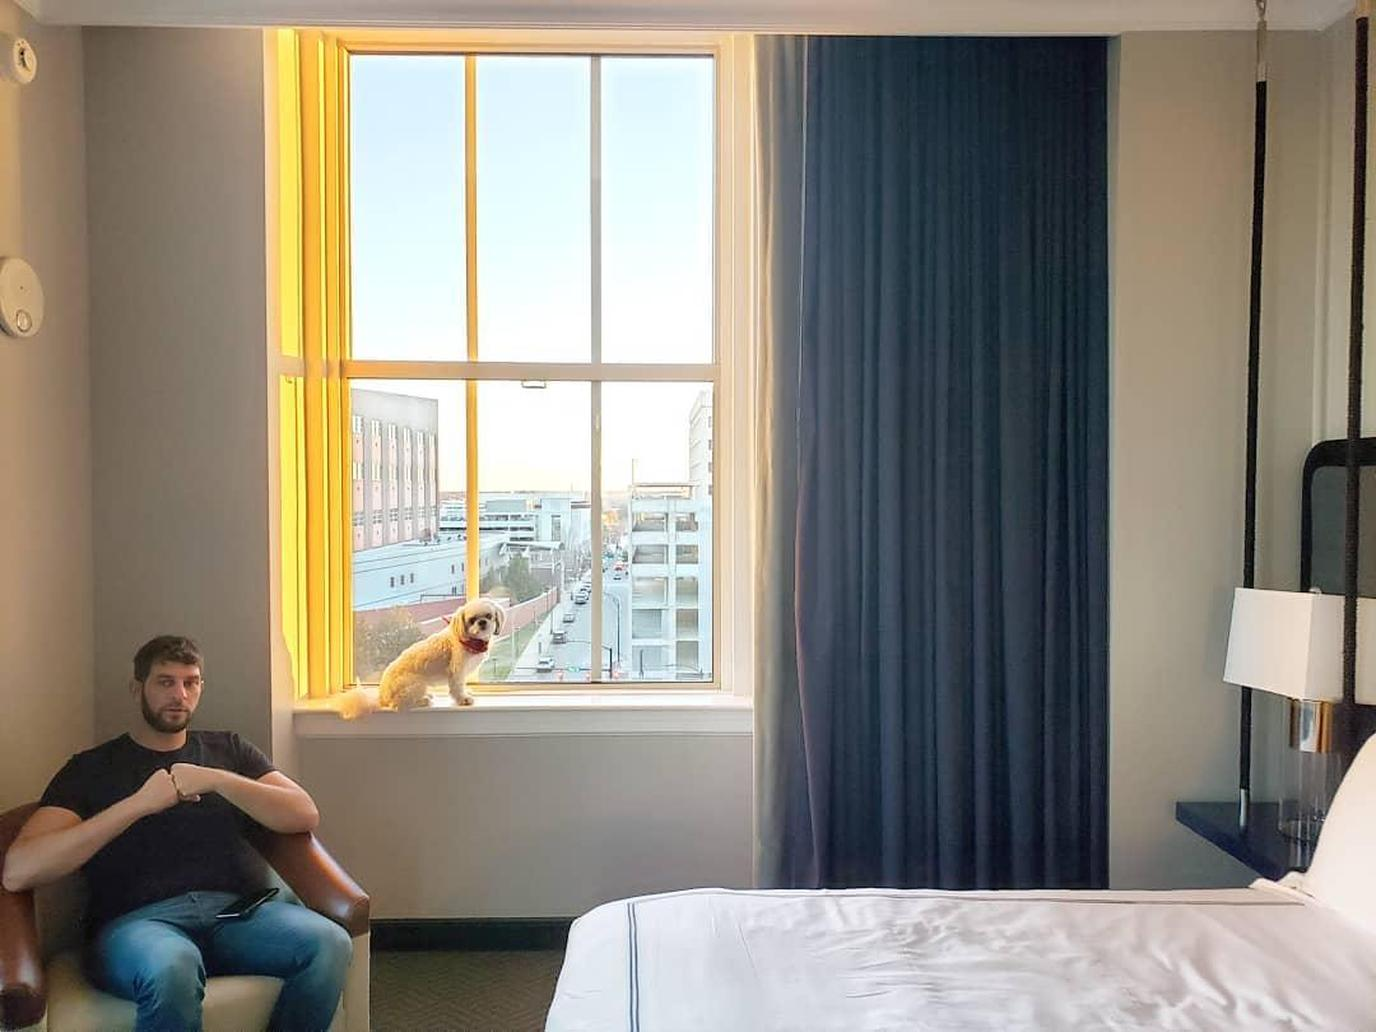 Stay in downtown Winston Salem with your dog at the pet-friendly Kimpton Cardinal Hotel.